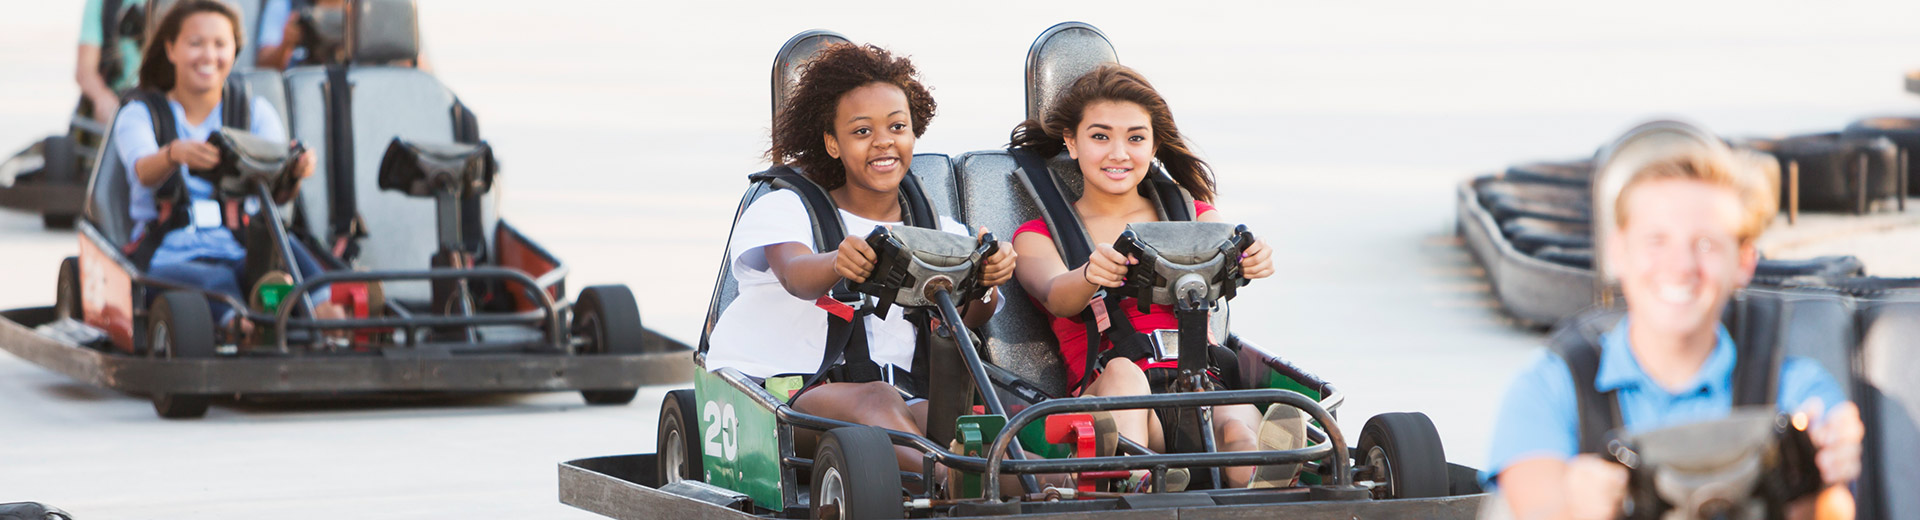 Go Karts Jacksonville Fl >> School Field Trips Adventure Landing Family Entertainment Center